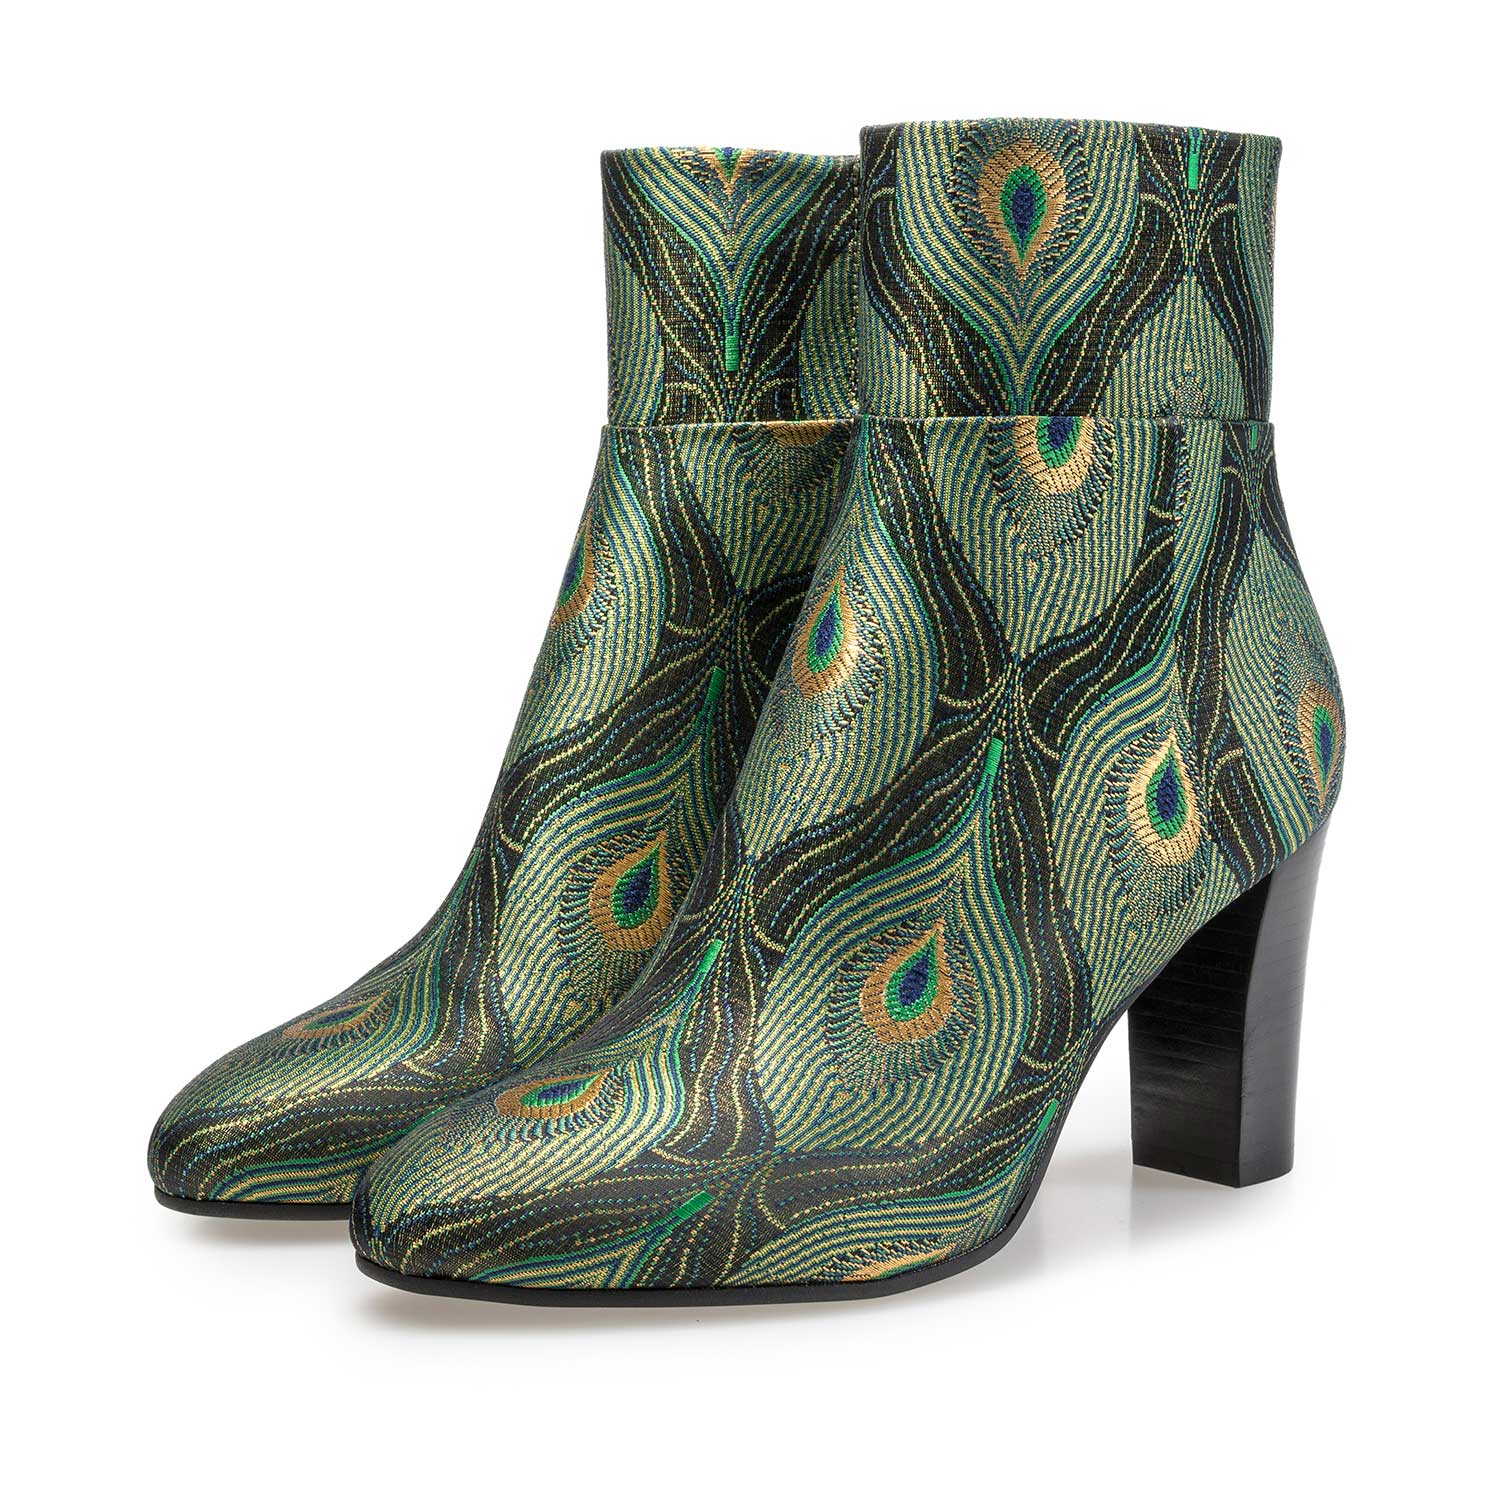 Ankle boots with peacock print – green – 8519609|Floris van